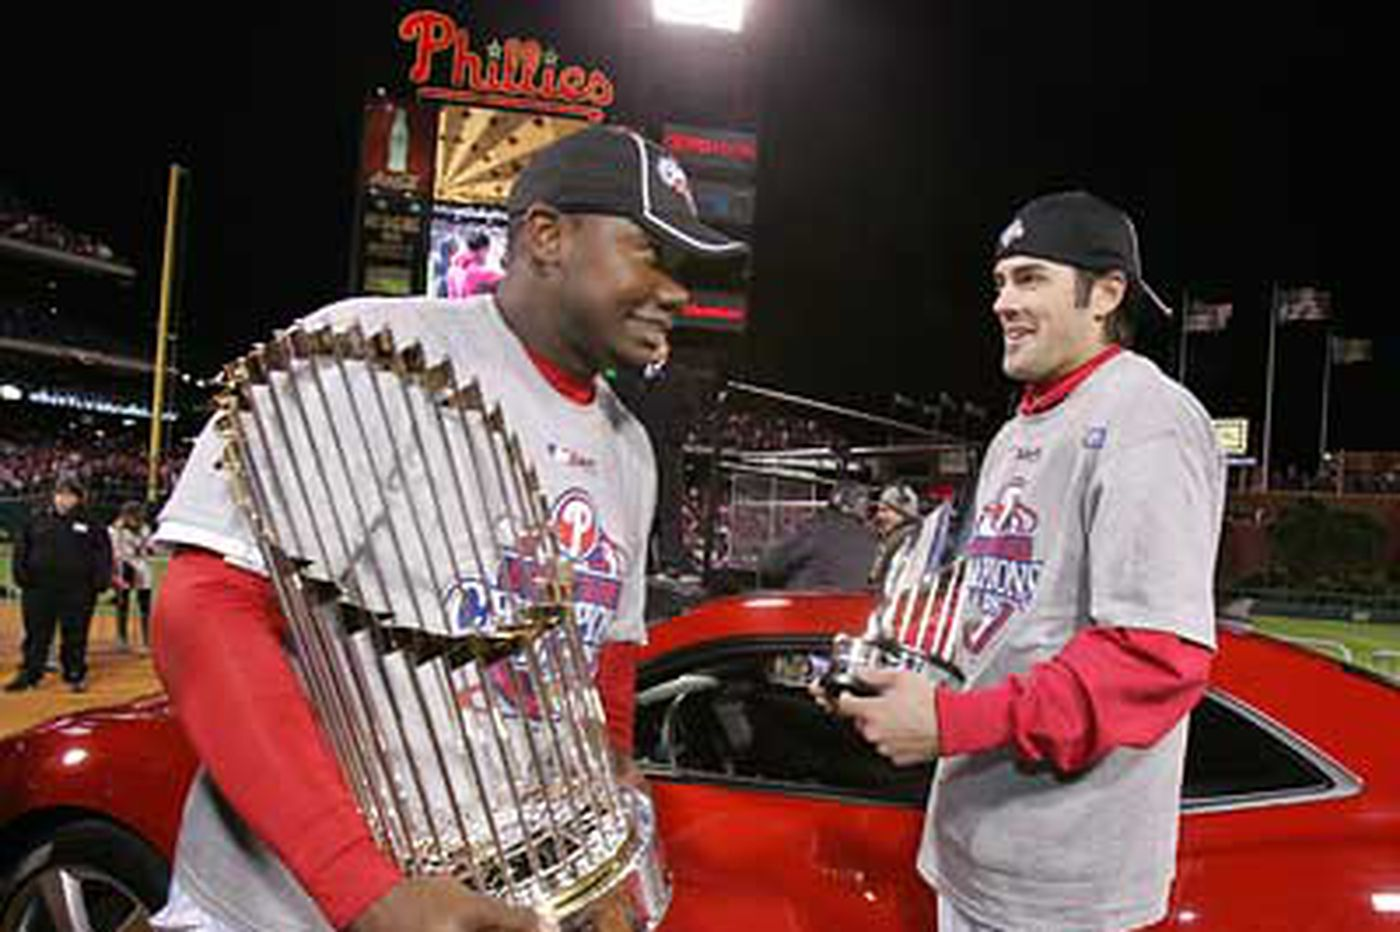 World Series MVP Cole Hamels puts the 'Most' in valuable